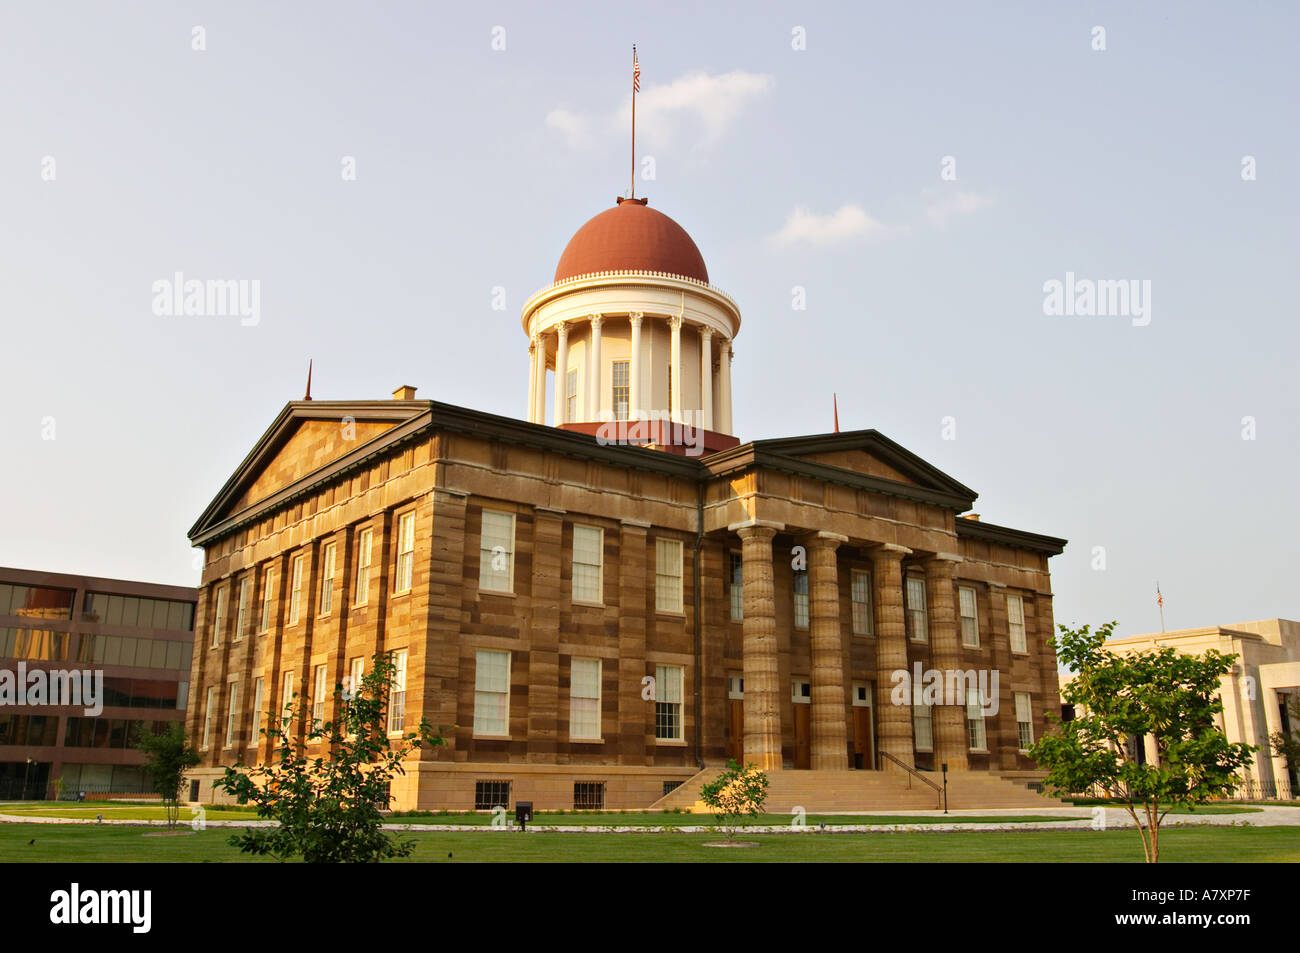 ILLINOIS Springfield Old State Capitol statehouse from 1839 to 1876 exterior stone and columns dome - Stock Image